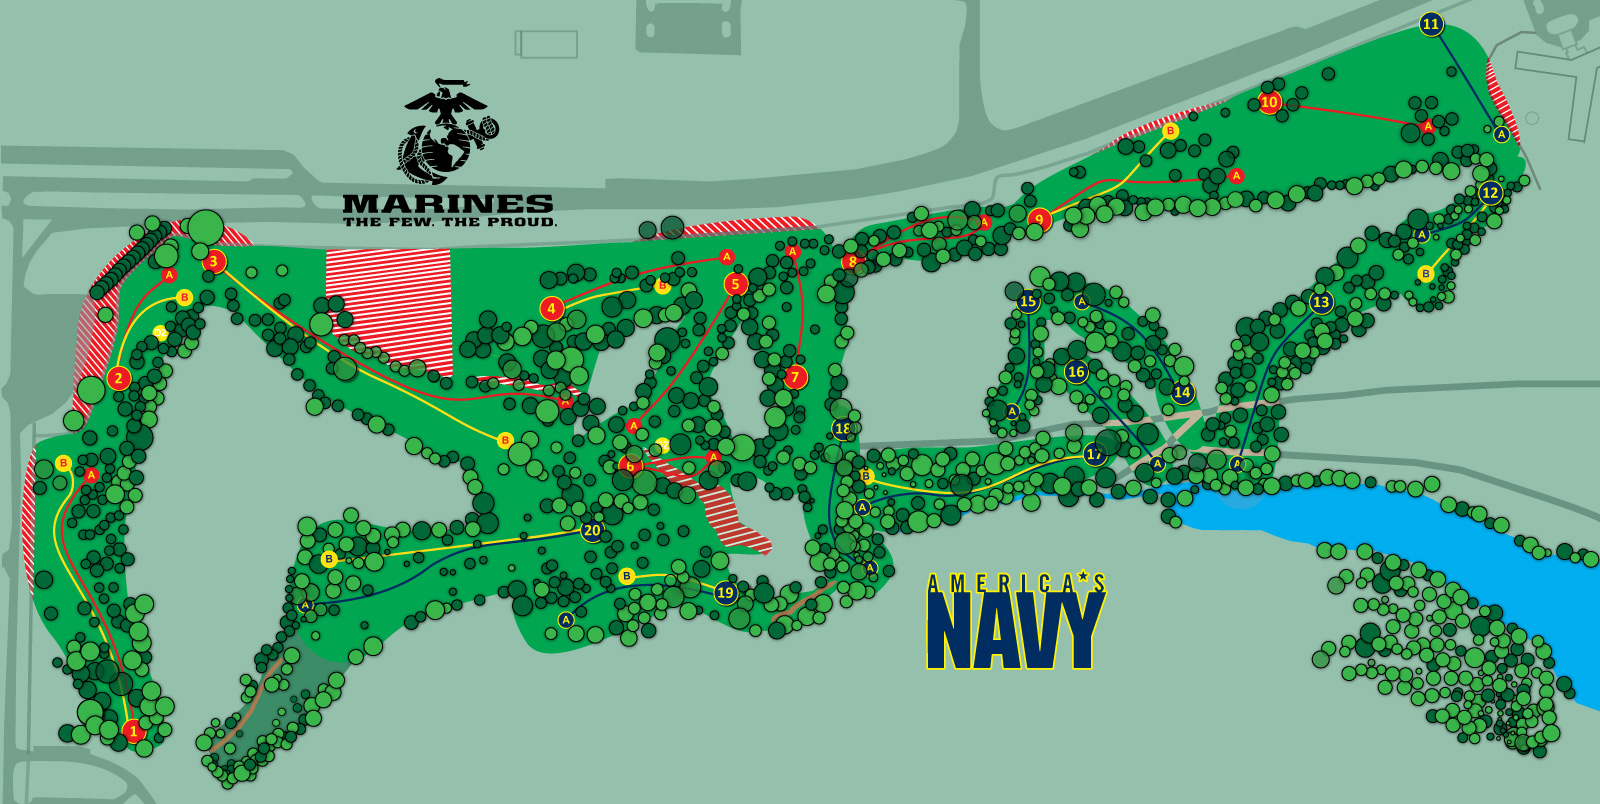 Fort-Gordon-Disc-Golf_Marine-Navy_short_map.jpg